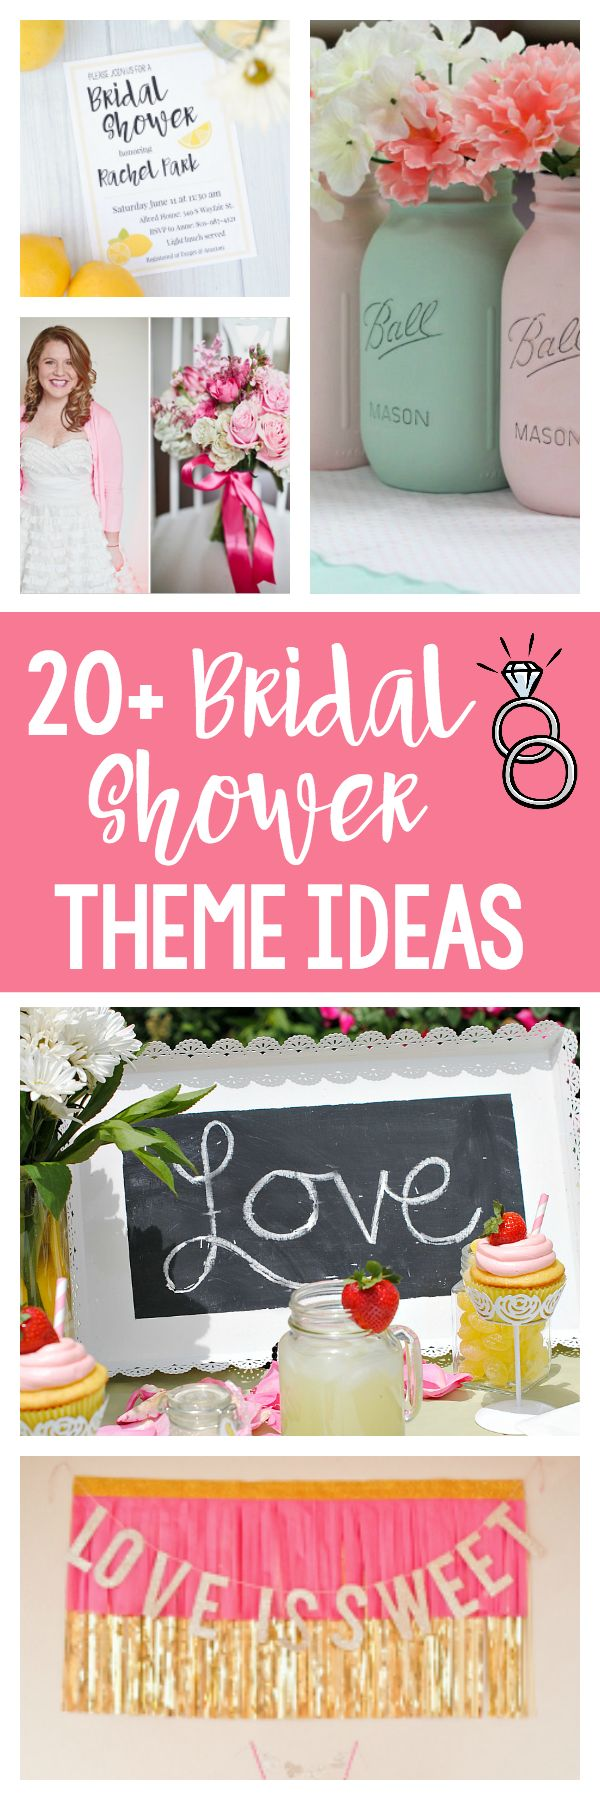 recipe themed bridal shower invitation wording%0A Bridal Shower Theme Ideas